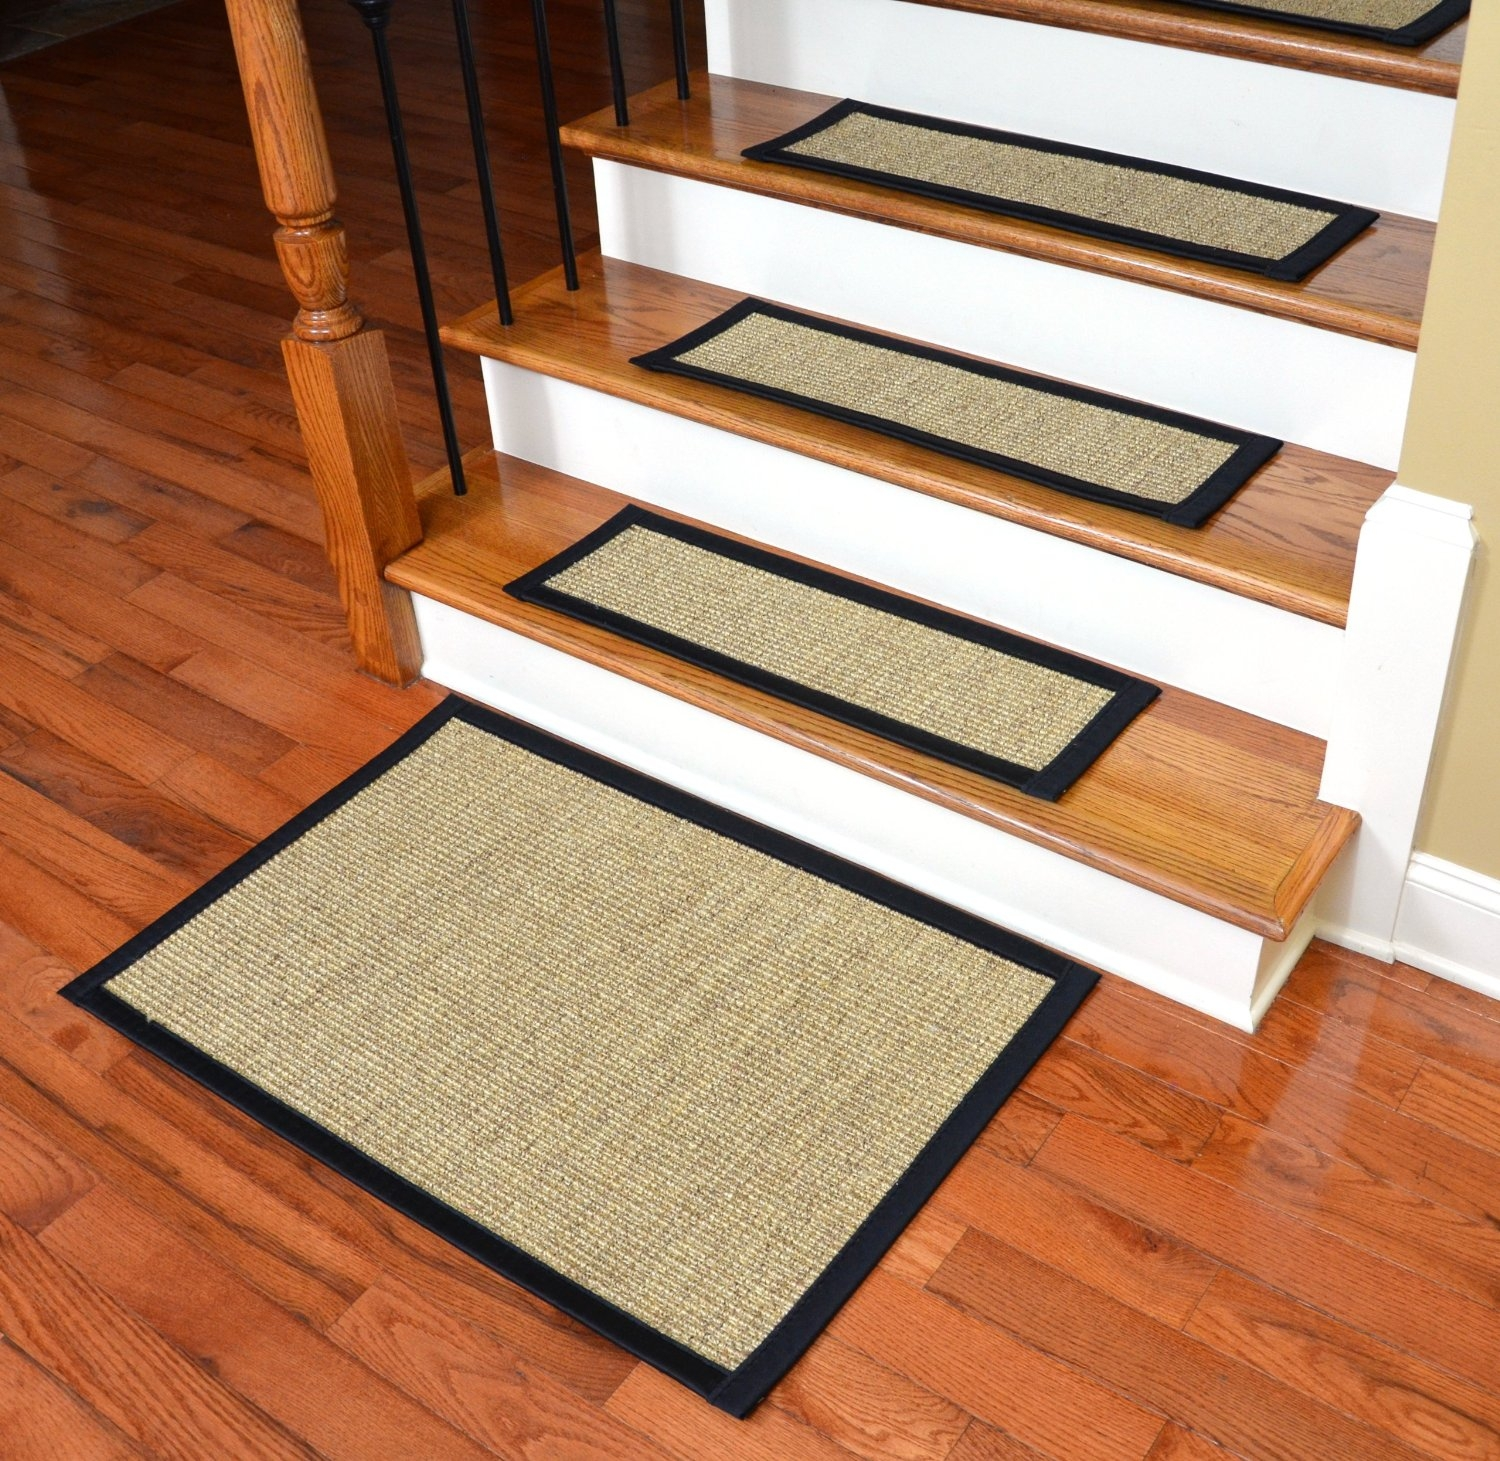 Flooring Non Slip Stair Treads Using Rug In Black And Beige On With Regard To NonSlip Stair Tread Rugs (#11 of 20)